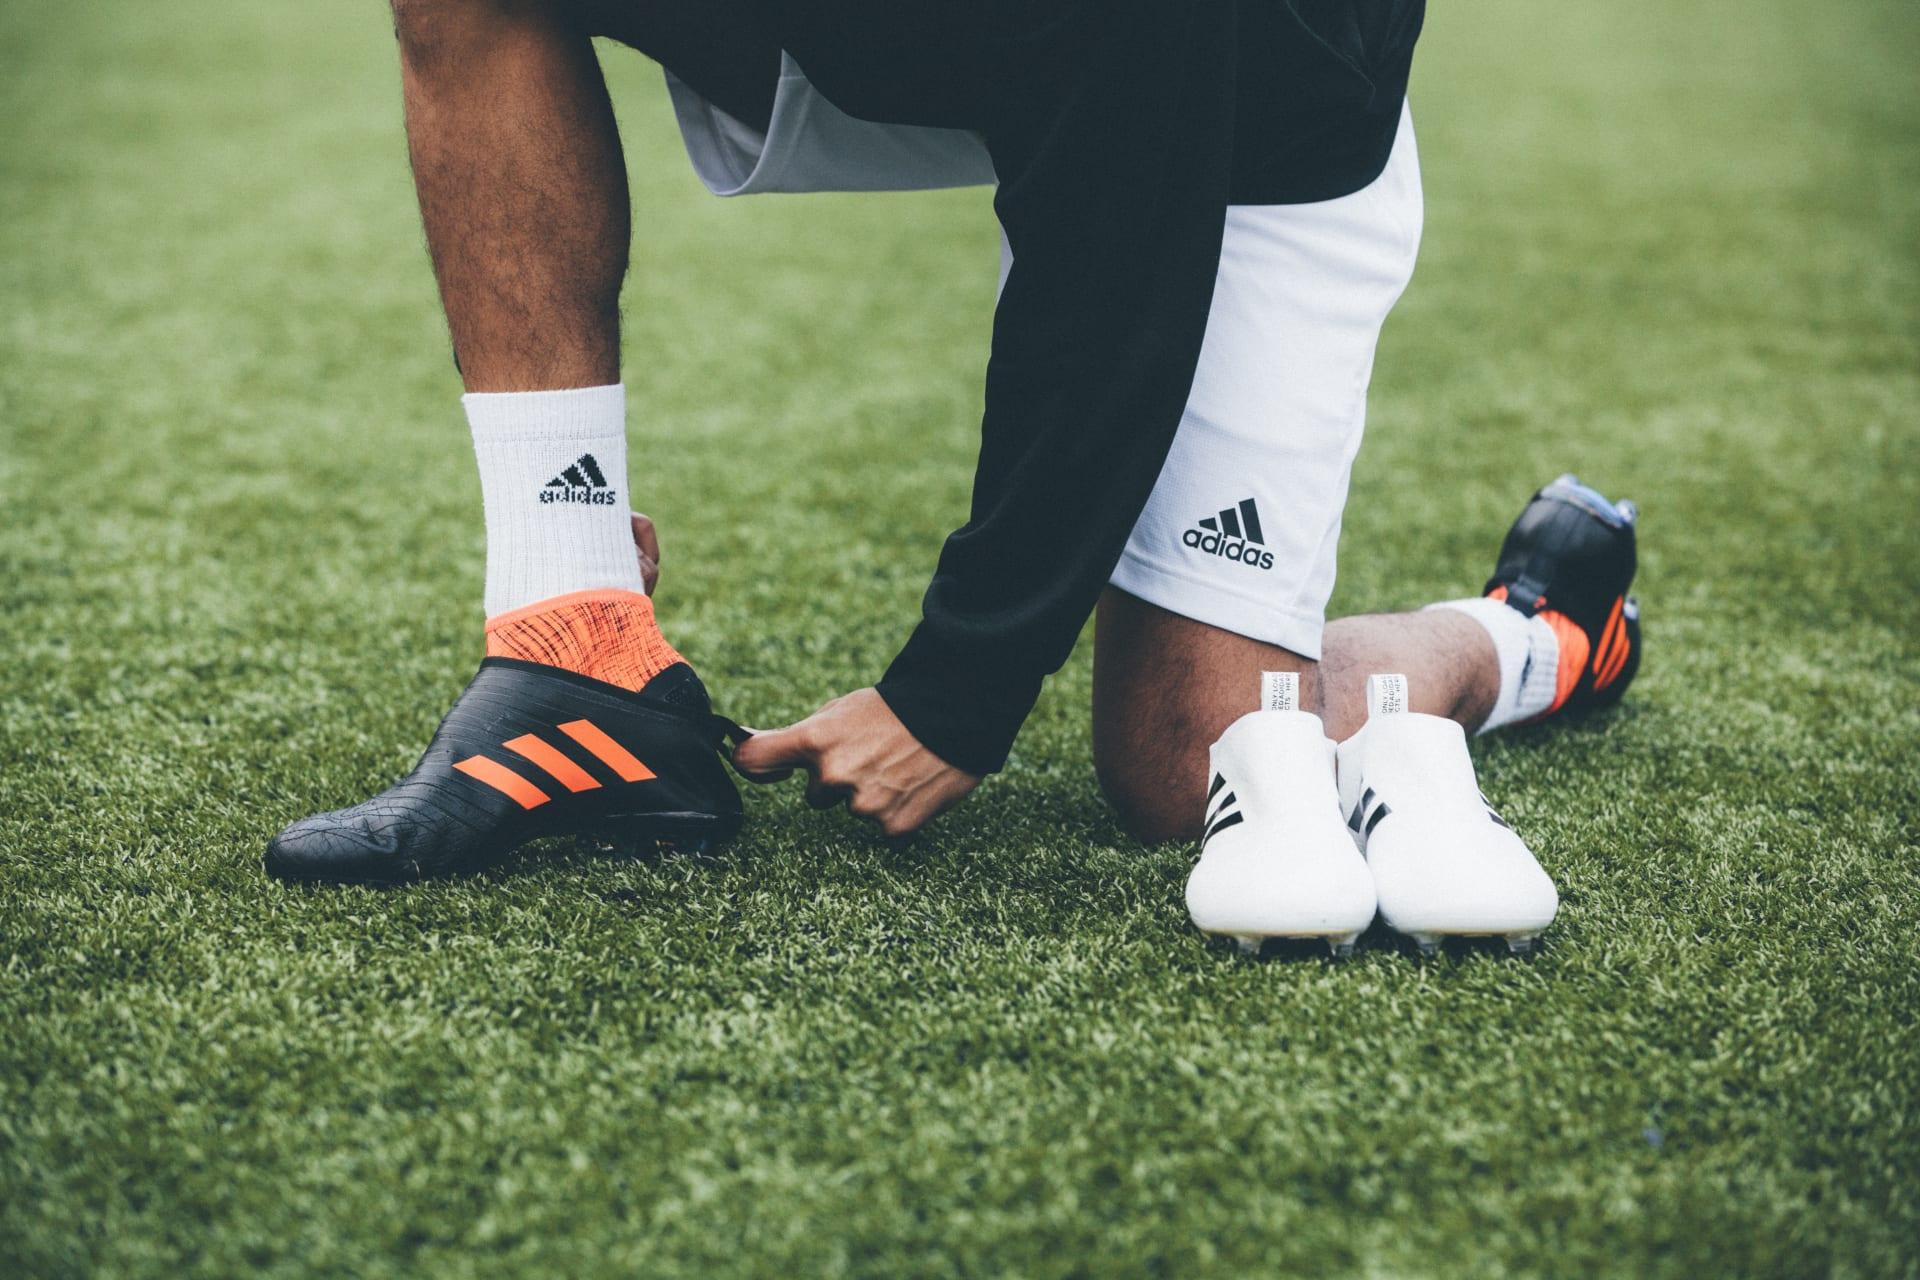 Best Adidas Glitch Football Boots Interchangeable Upper Sole